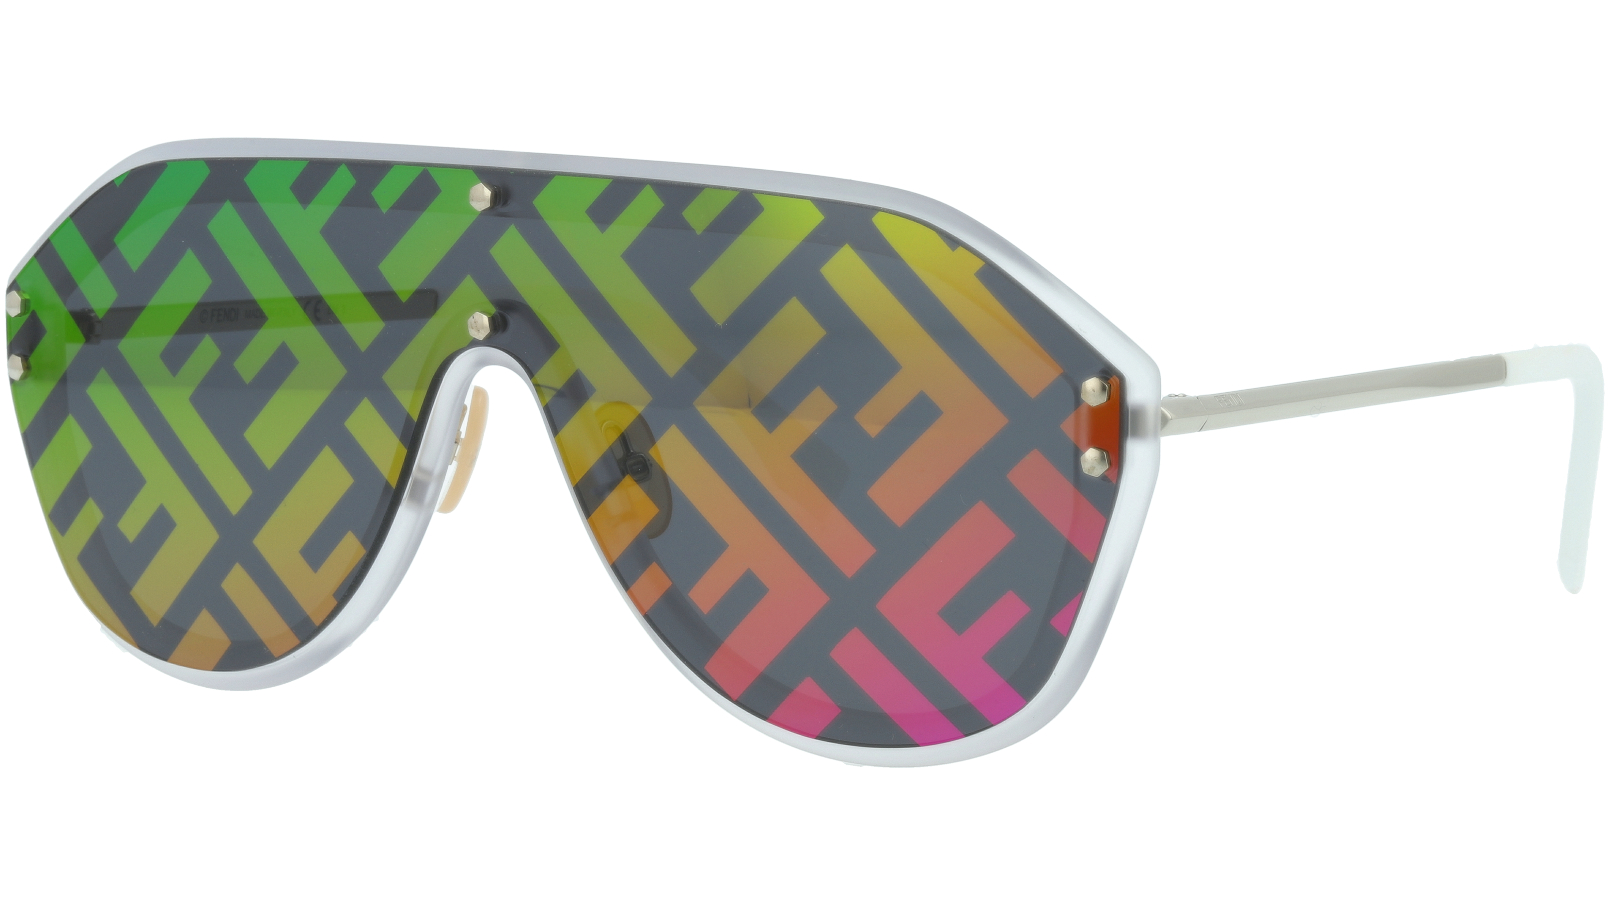 FENDI FFM0039/G/S F74R3 99 Multicolor Shield Sunglasses